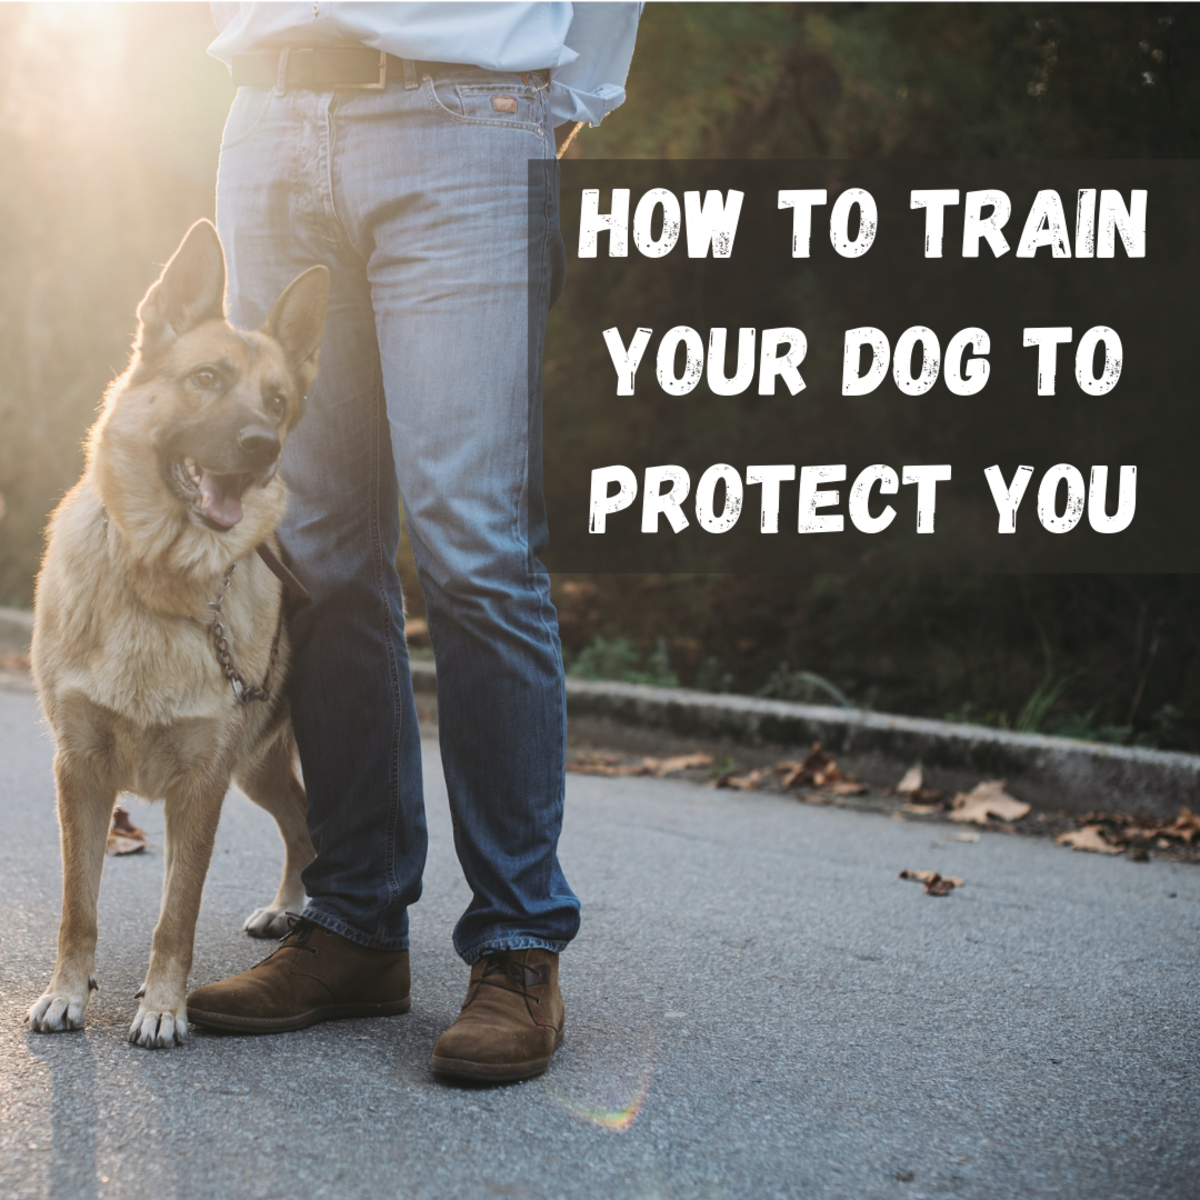 If you want a dog that's going to protect you rather than simply be your pal, here are five critical training tips.